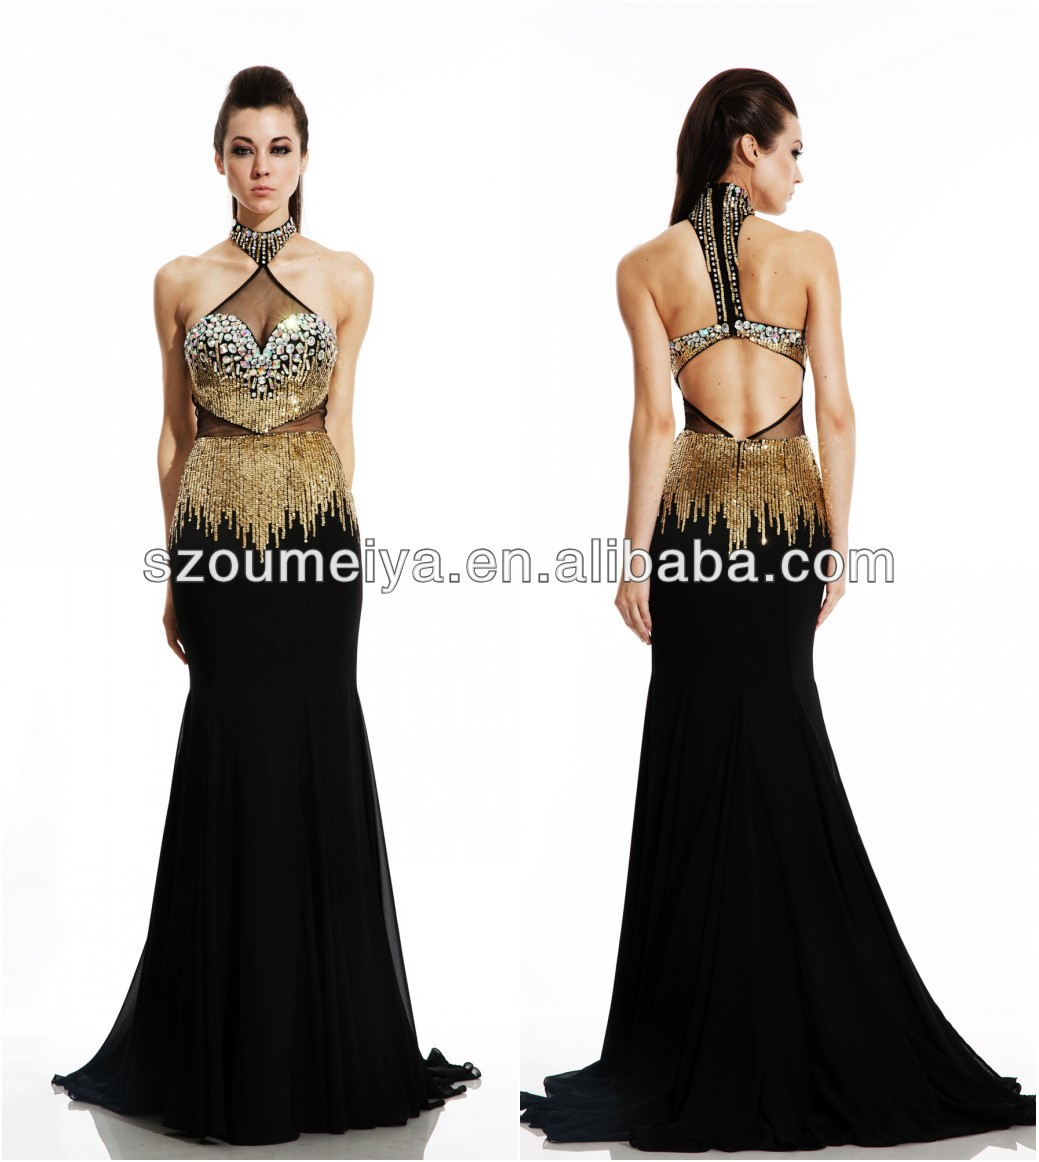 OUMEIYA-OEP792-Chiffon-Sexy-Halter-Mermaid-Beaded-Black-and-Gold-Prom-Dress-2016.jpg